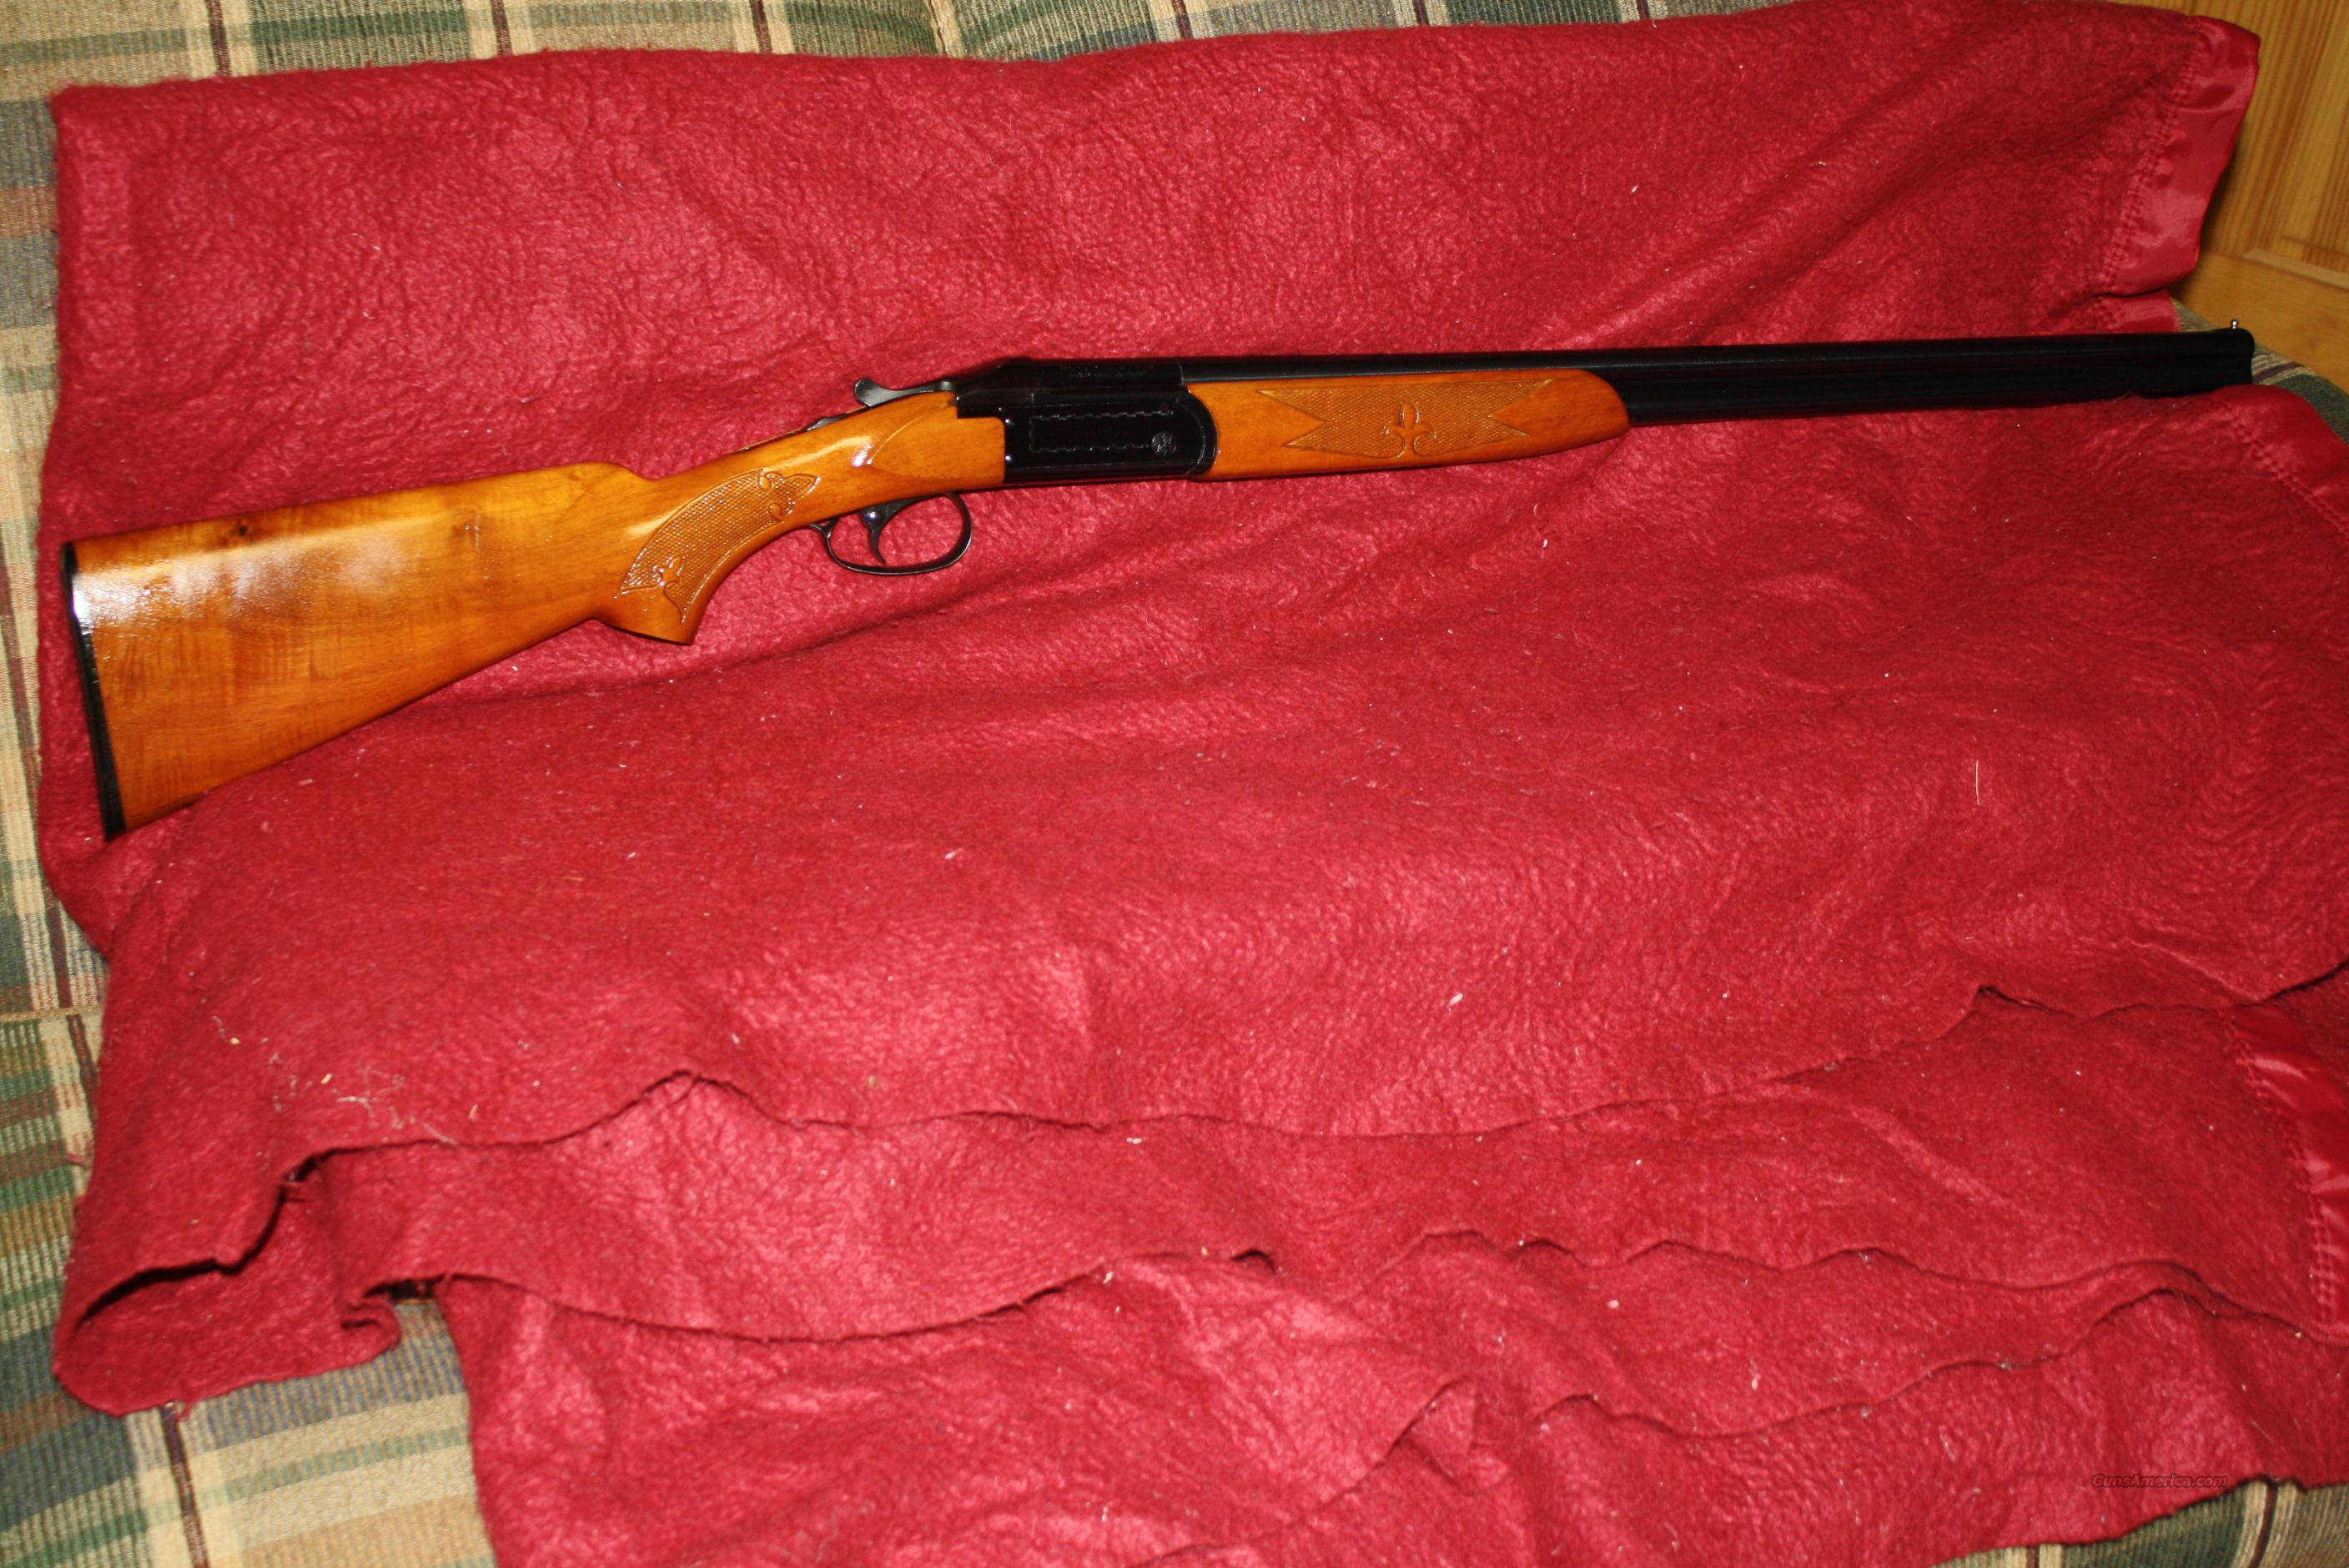 VALMET/SAVAGE 330 20 GAUGE OVER/UNDER  Guns > Shotguns > Valmet Shotguns